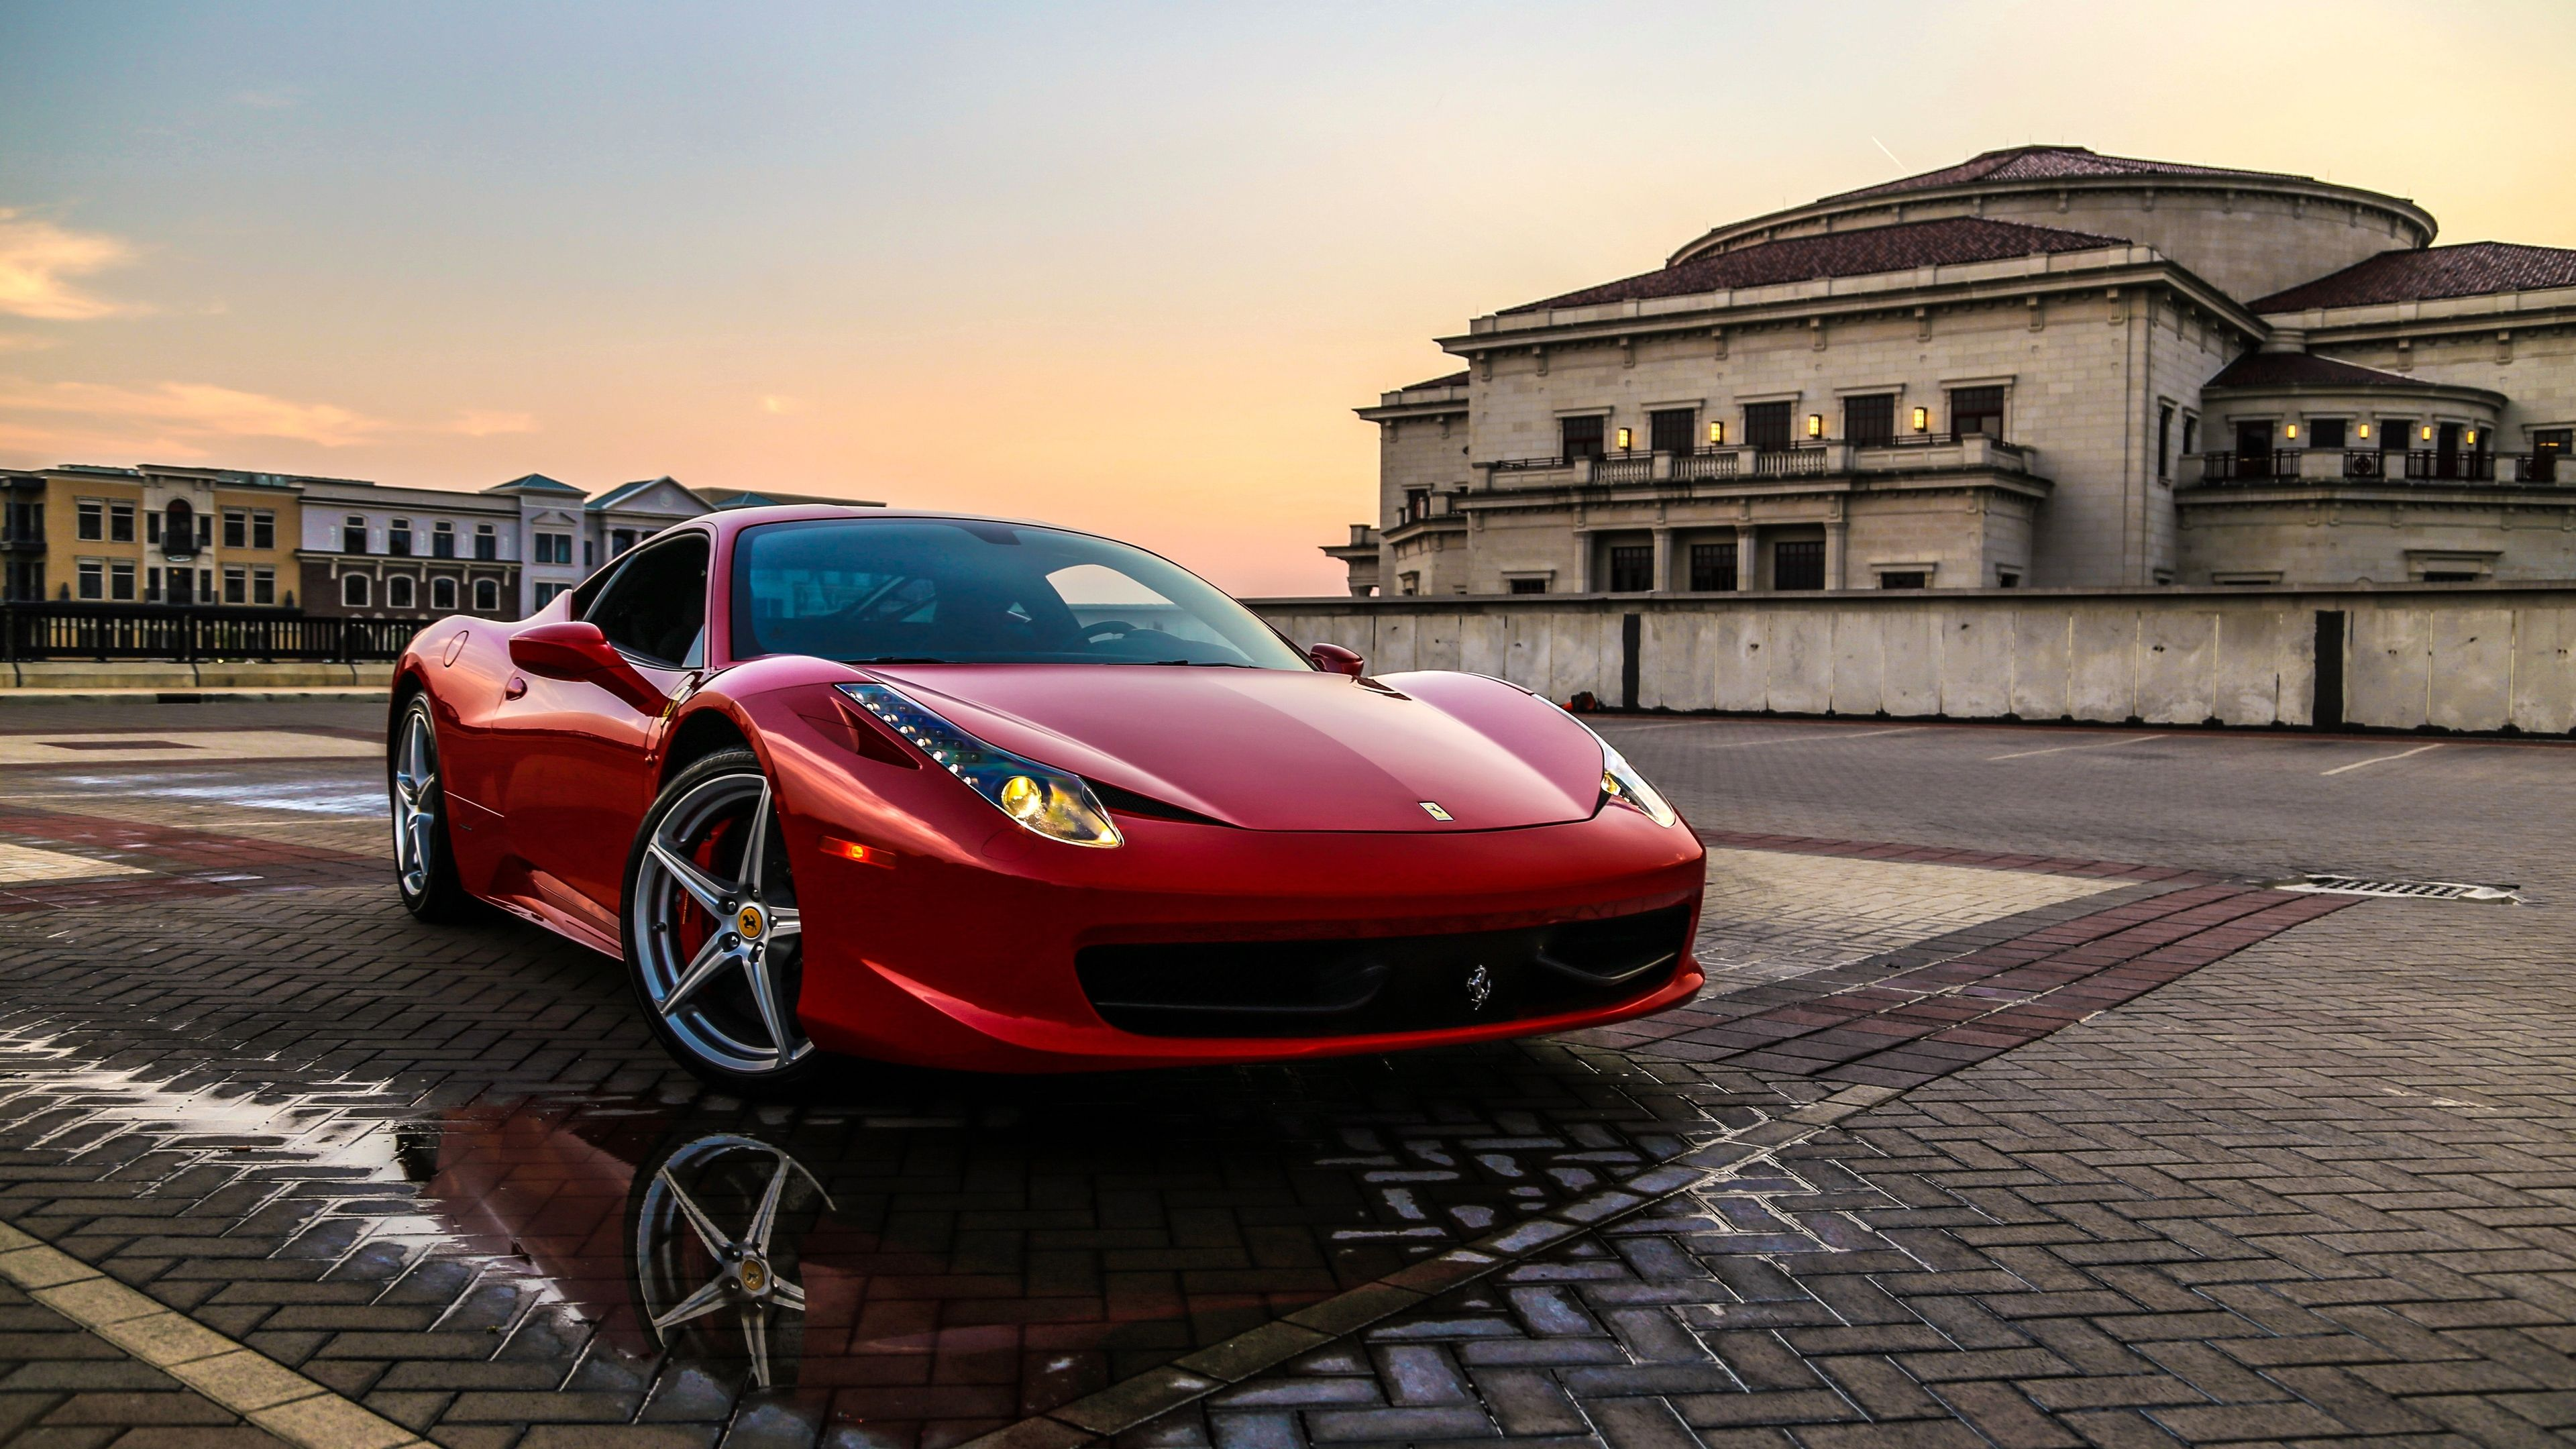 Wallpaper 4k Red Ferrari 4k 4k Wallpapers Cars Wallpapers Ferrari Wallpapers Hd Wallpapers Red Wallpapers Red Wallpaper Car Wallpapers Hd Wallpaper